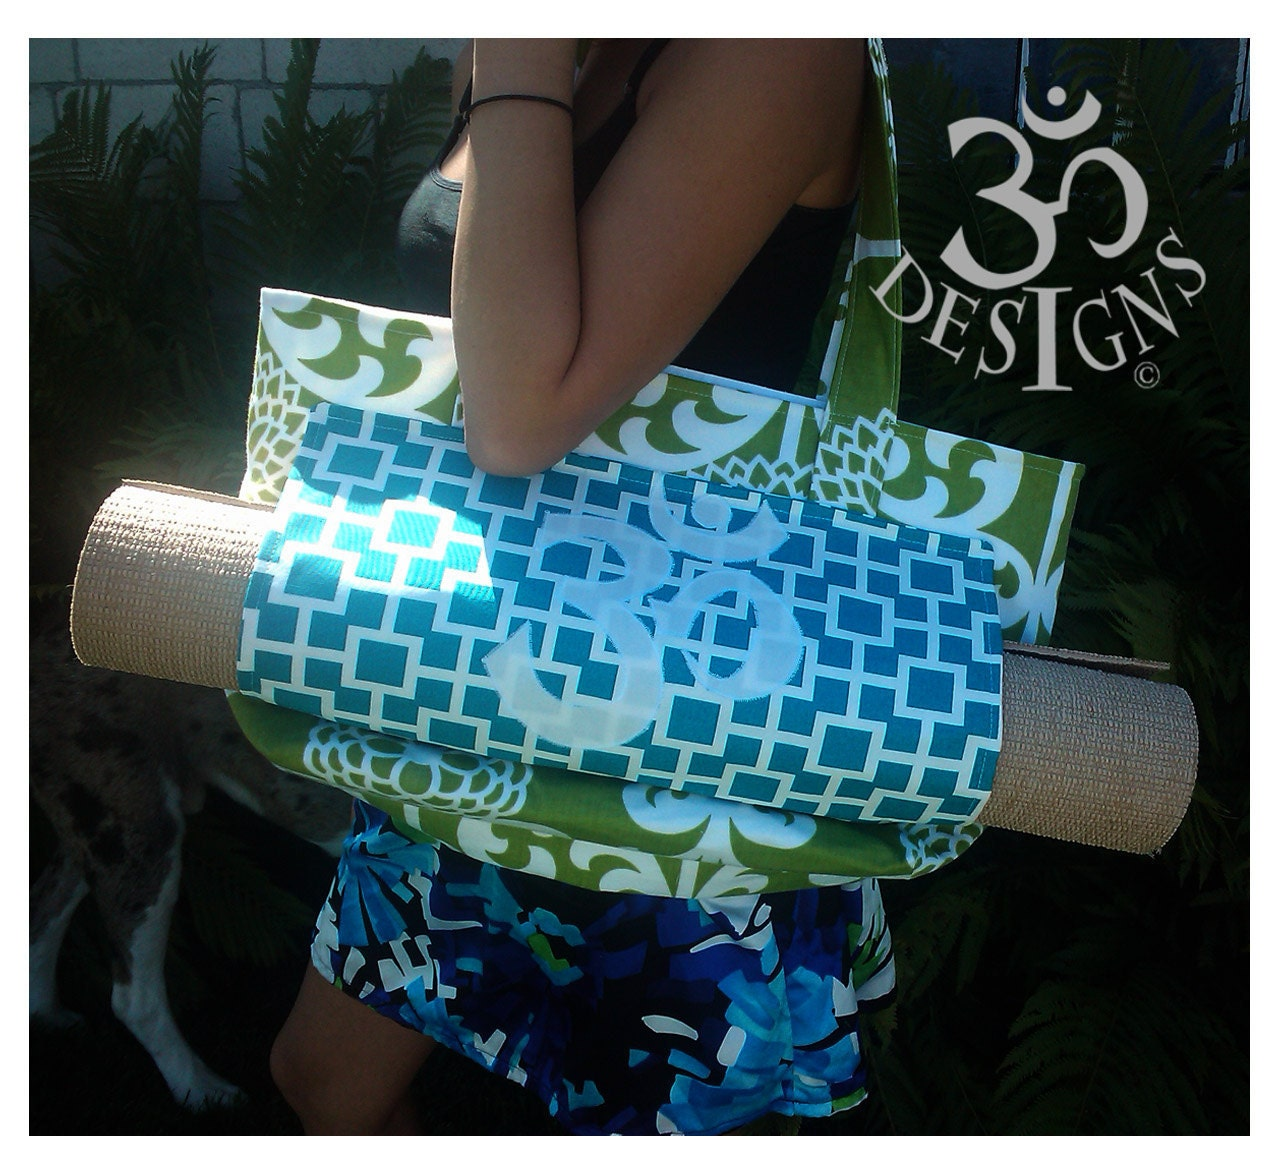 Namaste Designs Yoga Tote Bag And Yoga Strap Pattern By